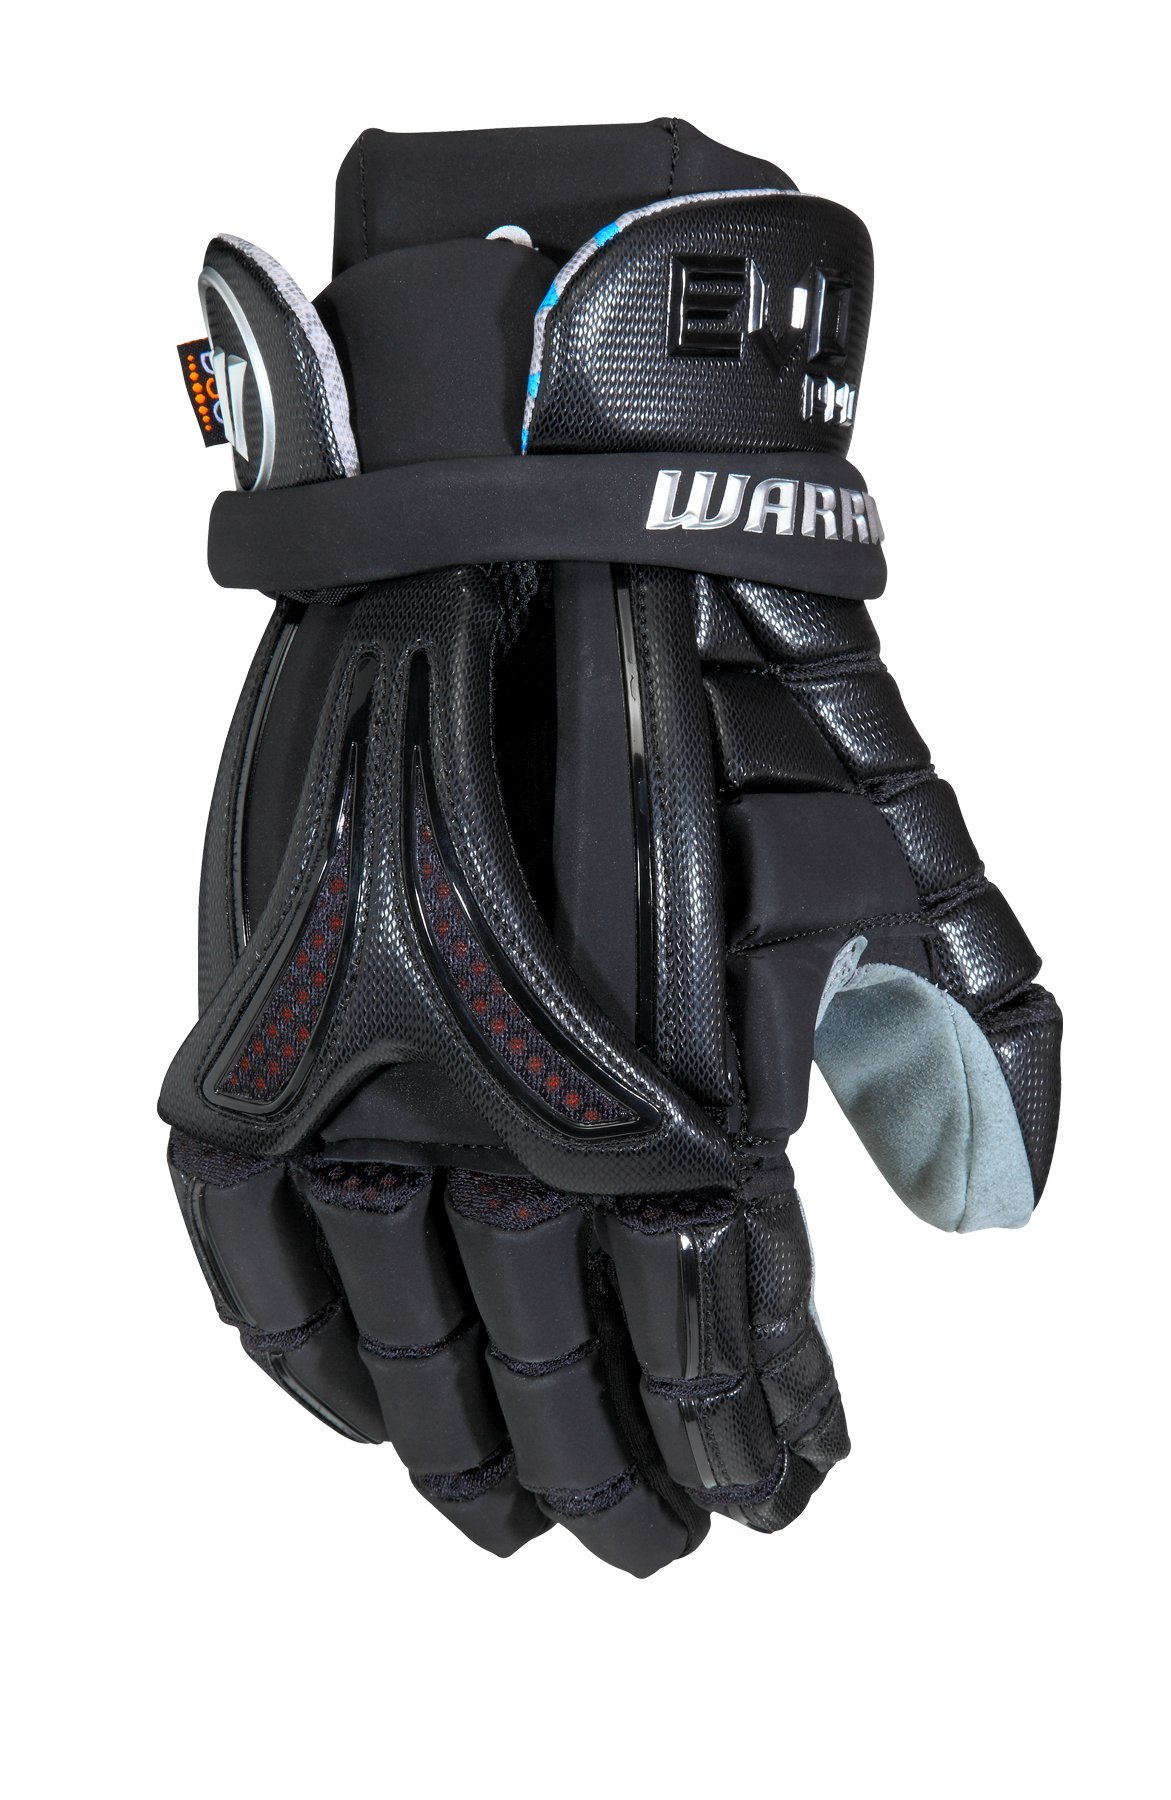 Warrior Evo Pro Gloves, Medium, Black